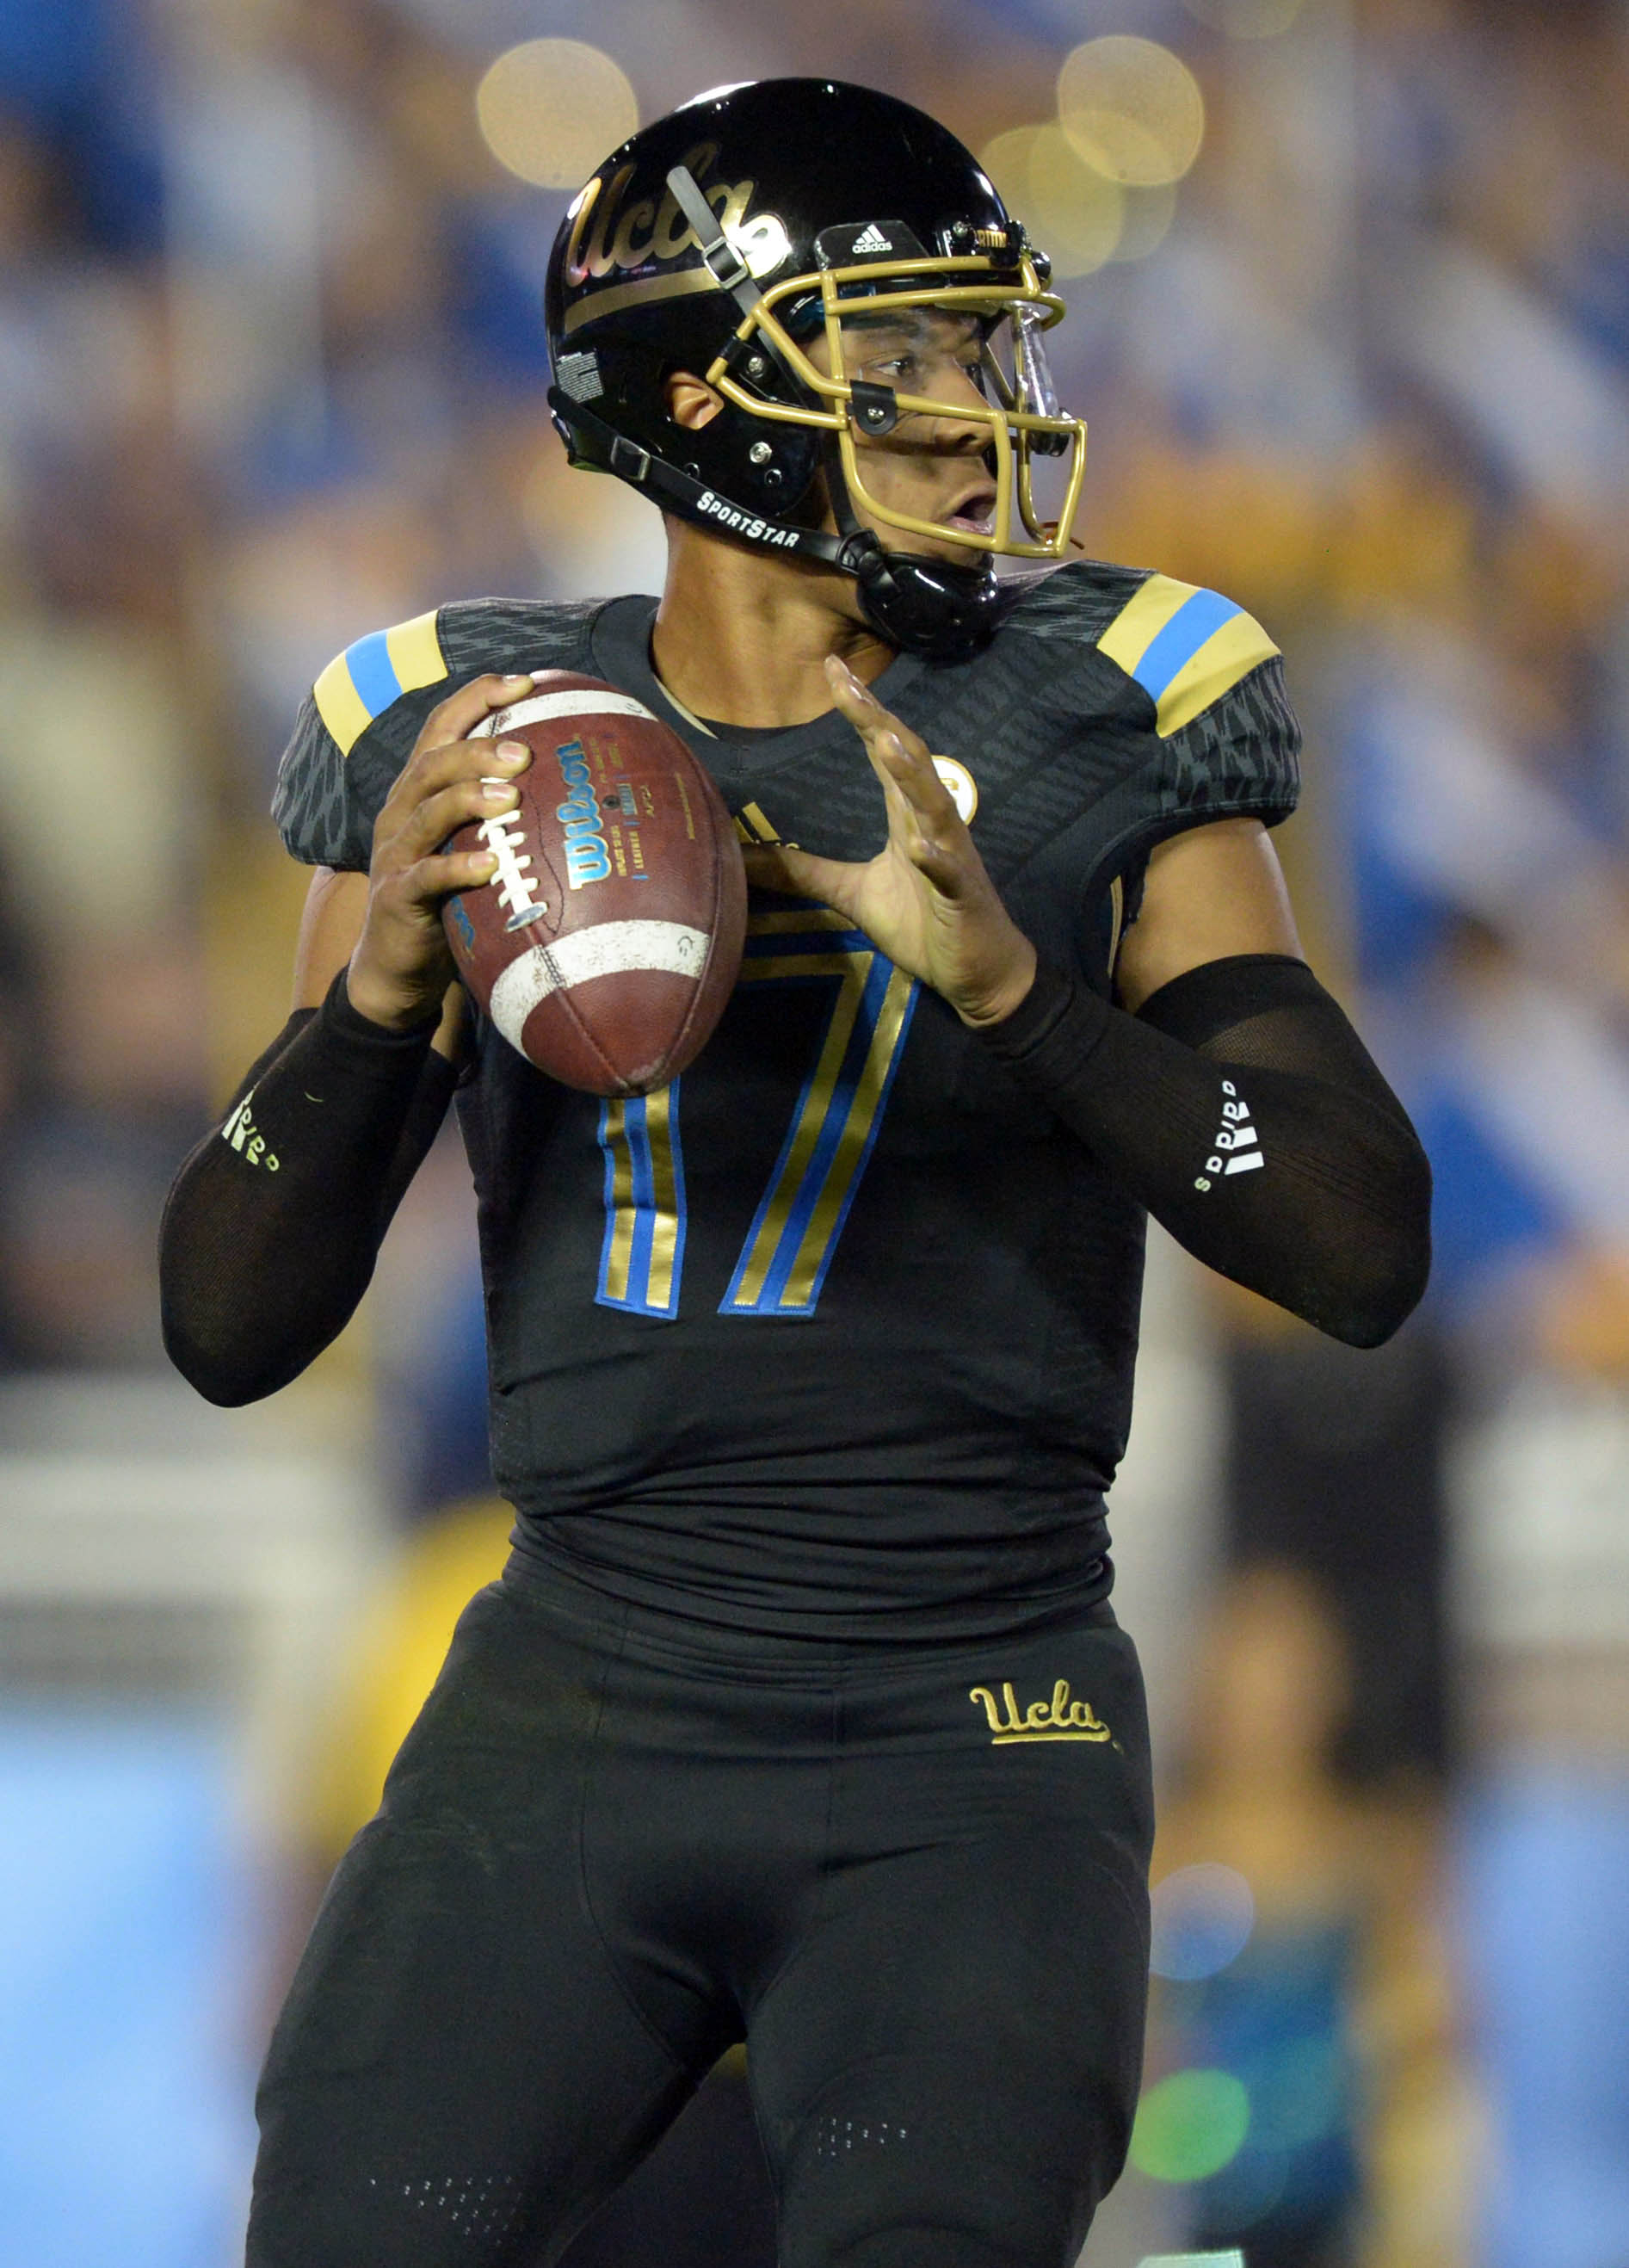 Nov 15, 2013; Pasadena, CA, USA; UCLA Bruins quarterback Brett Hundley (17) throws a pass against the Washington Huskies at Rose Bowl. Mandatory Credit: Kirby Lee-USA TODAY Sports